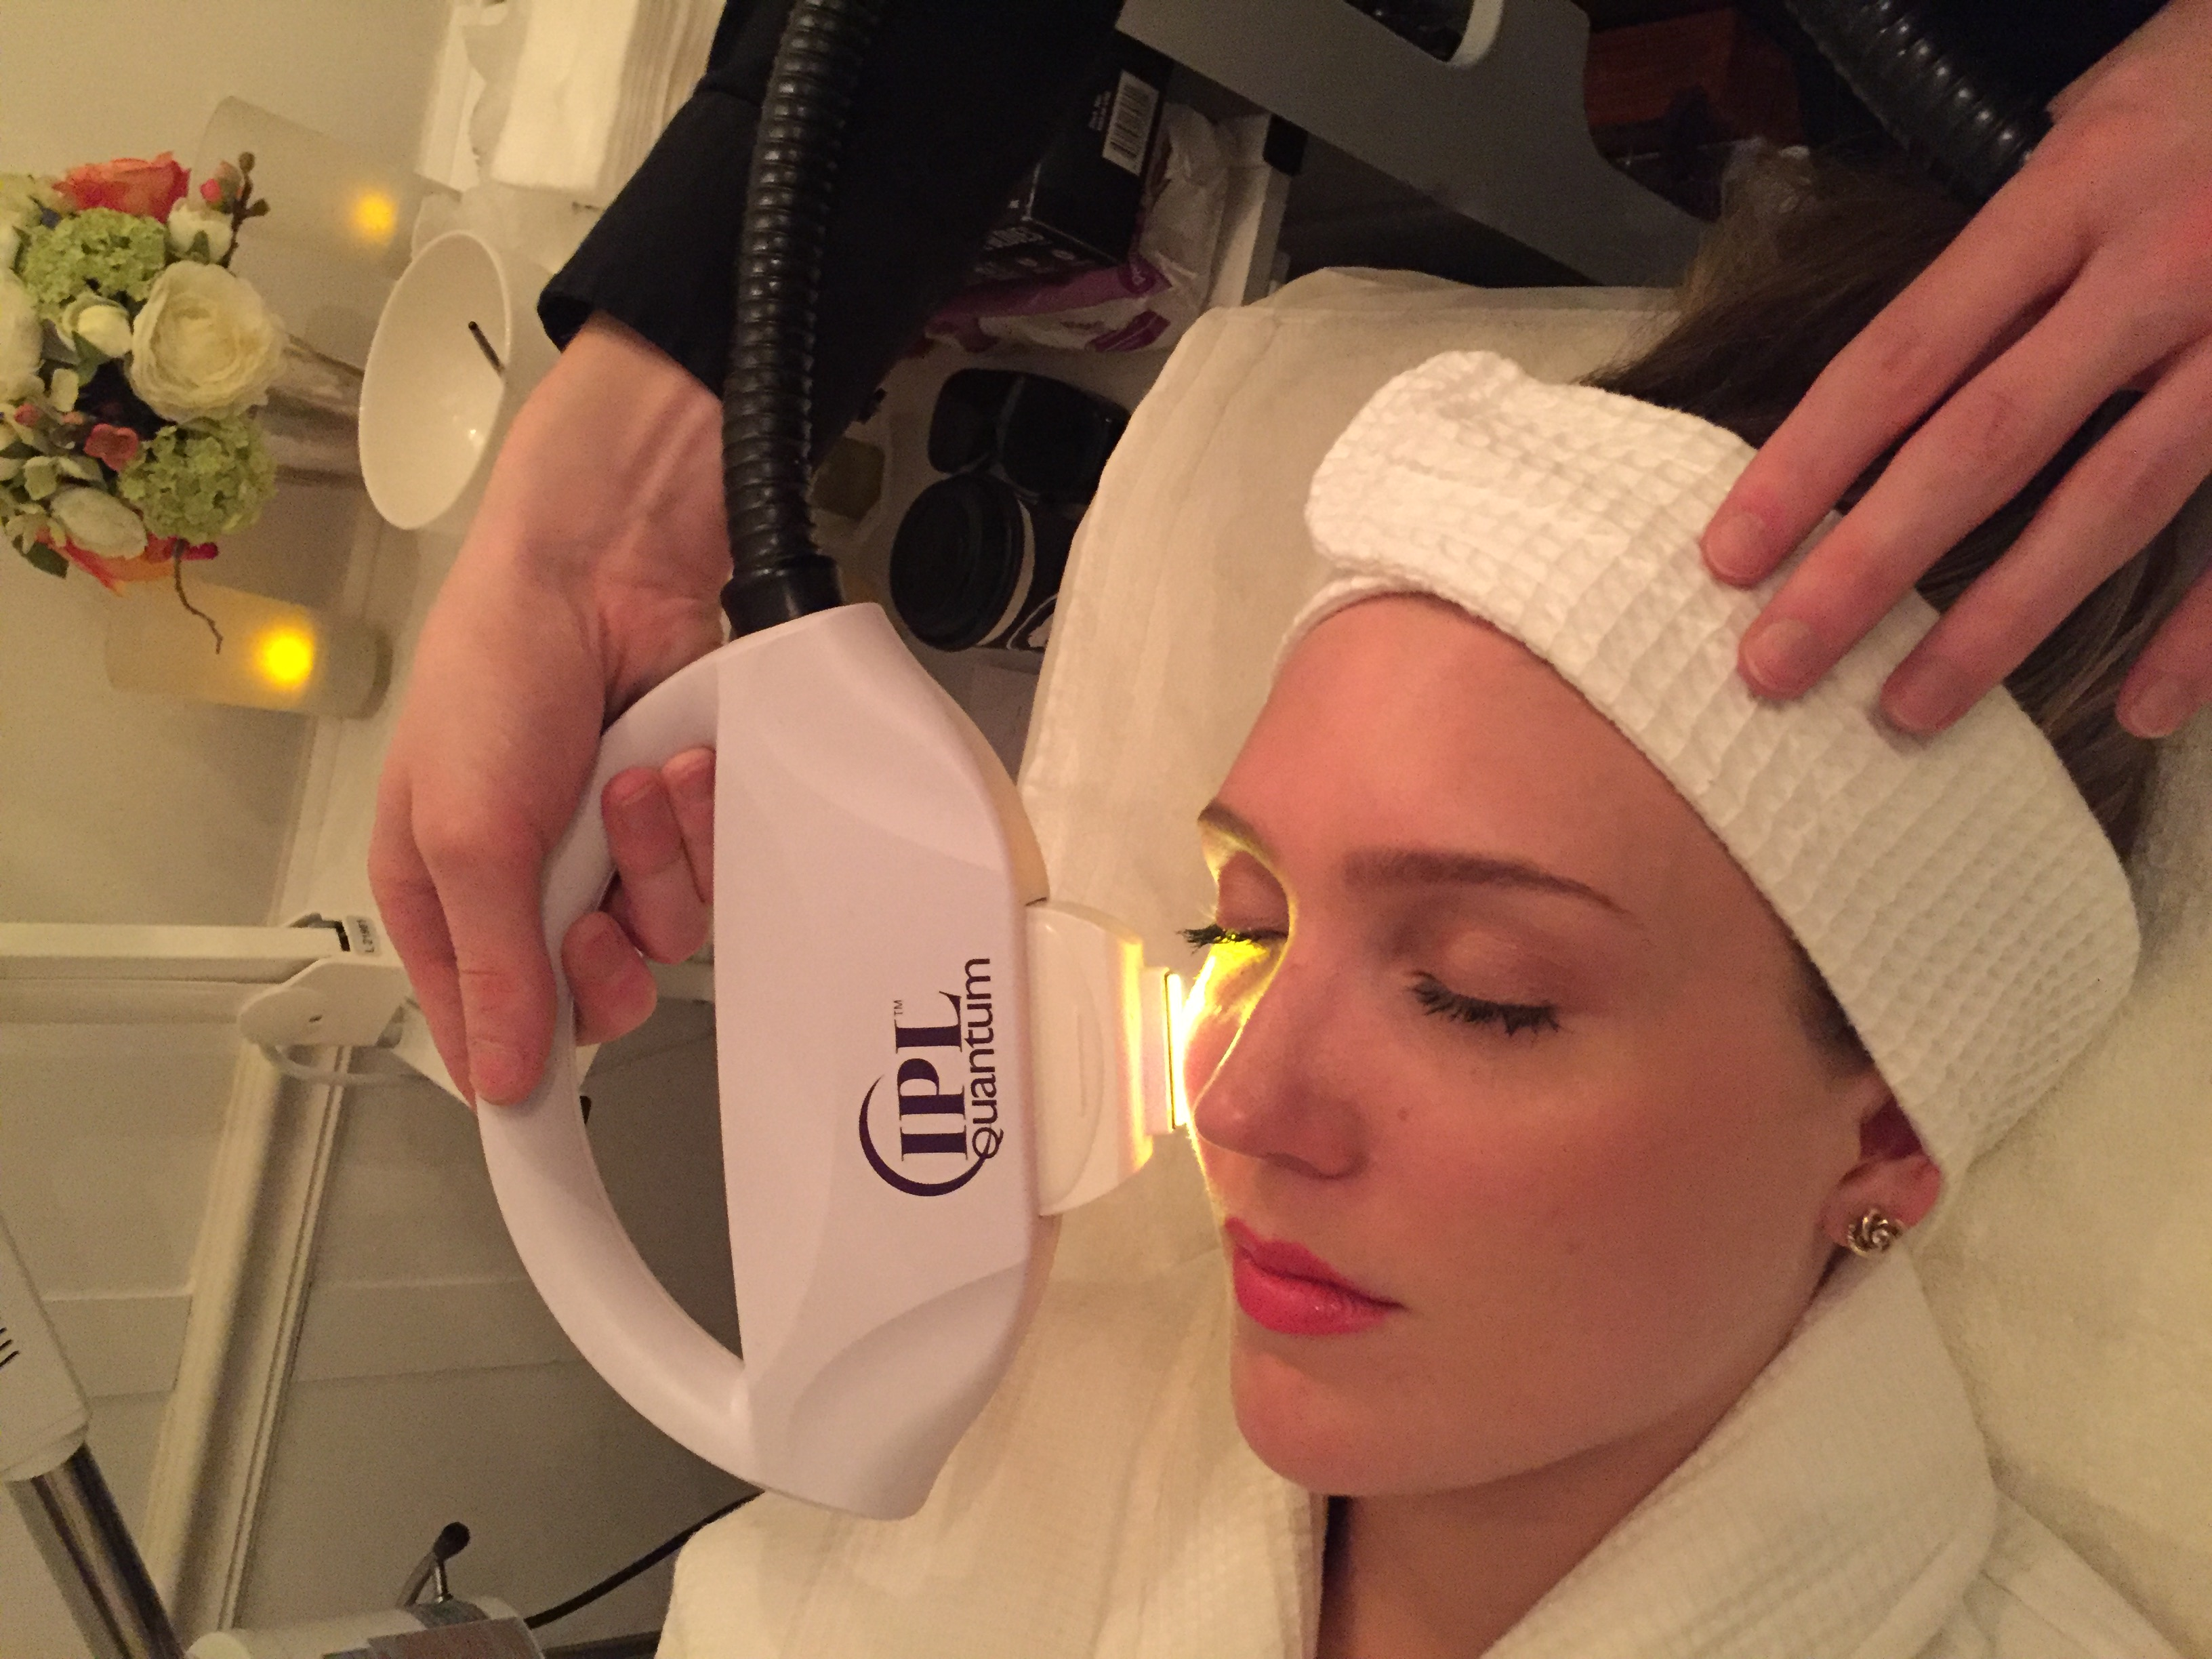 Vanquishing sun damage with IPL at Skin Bar NYC.